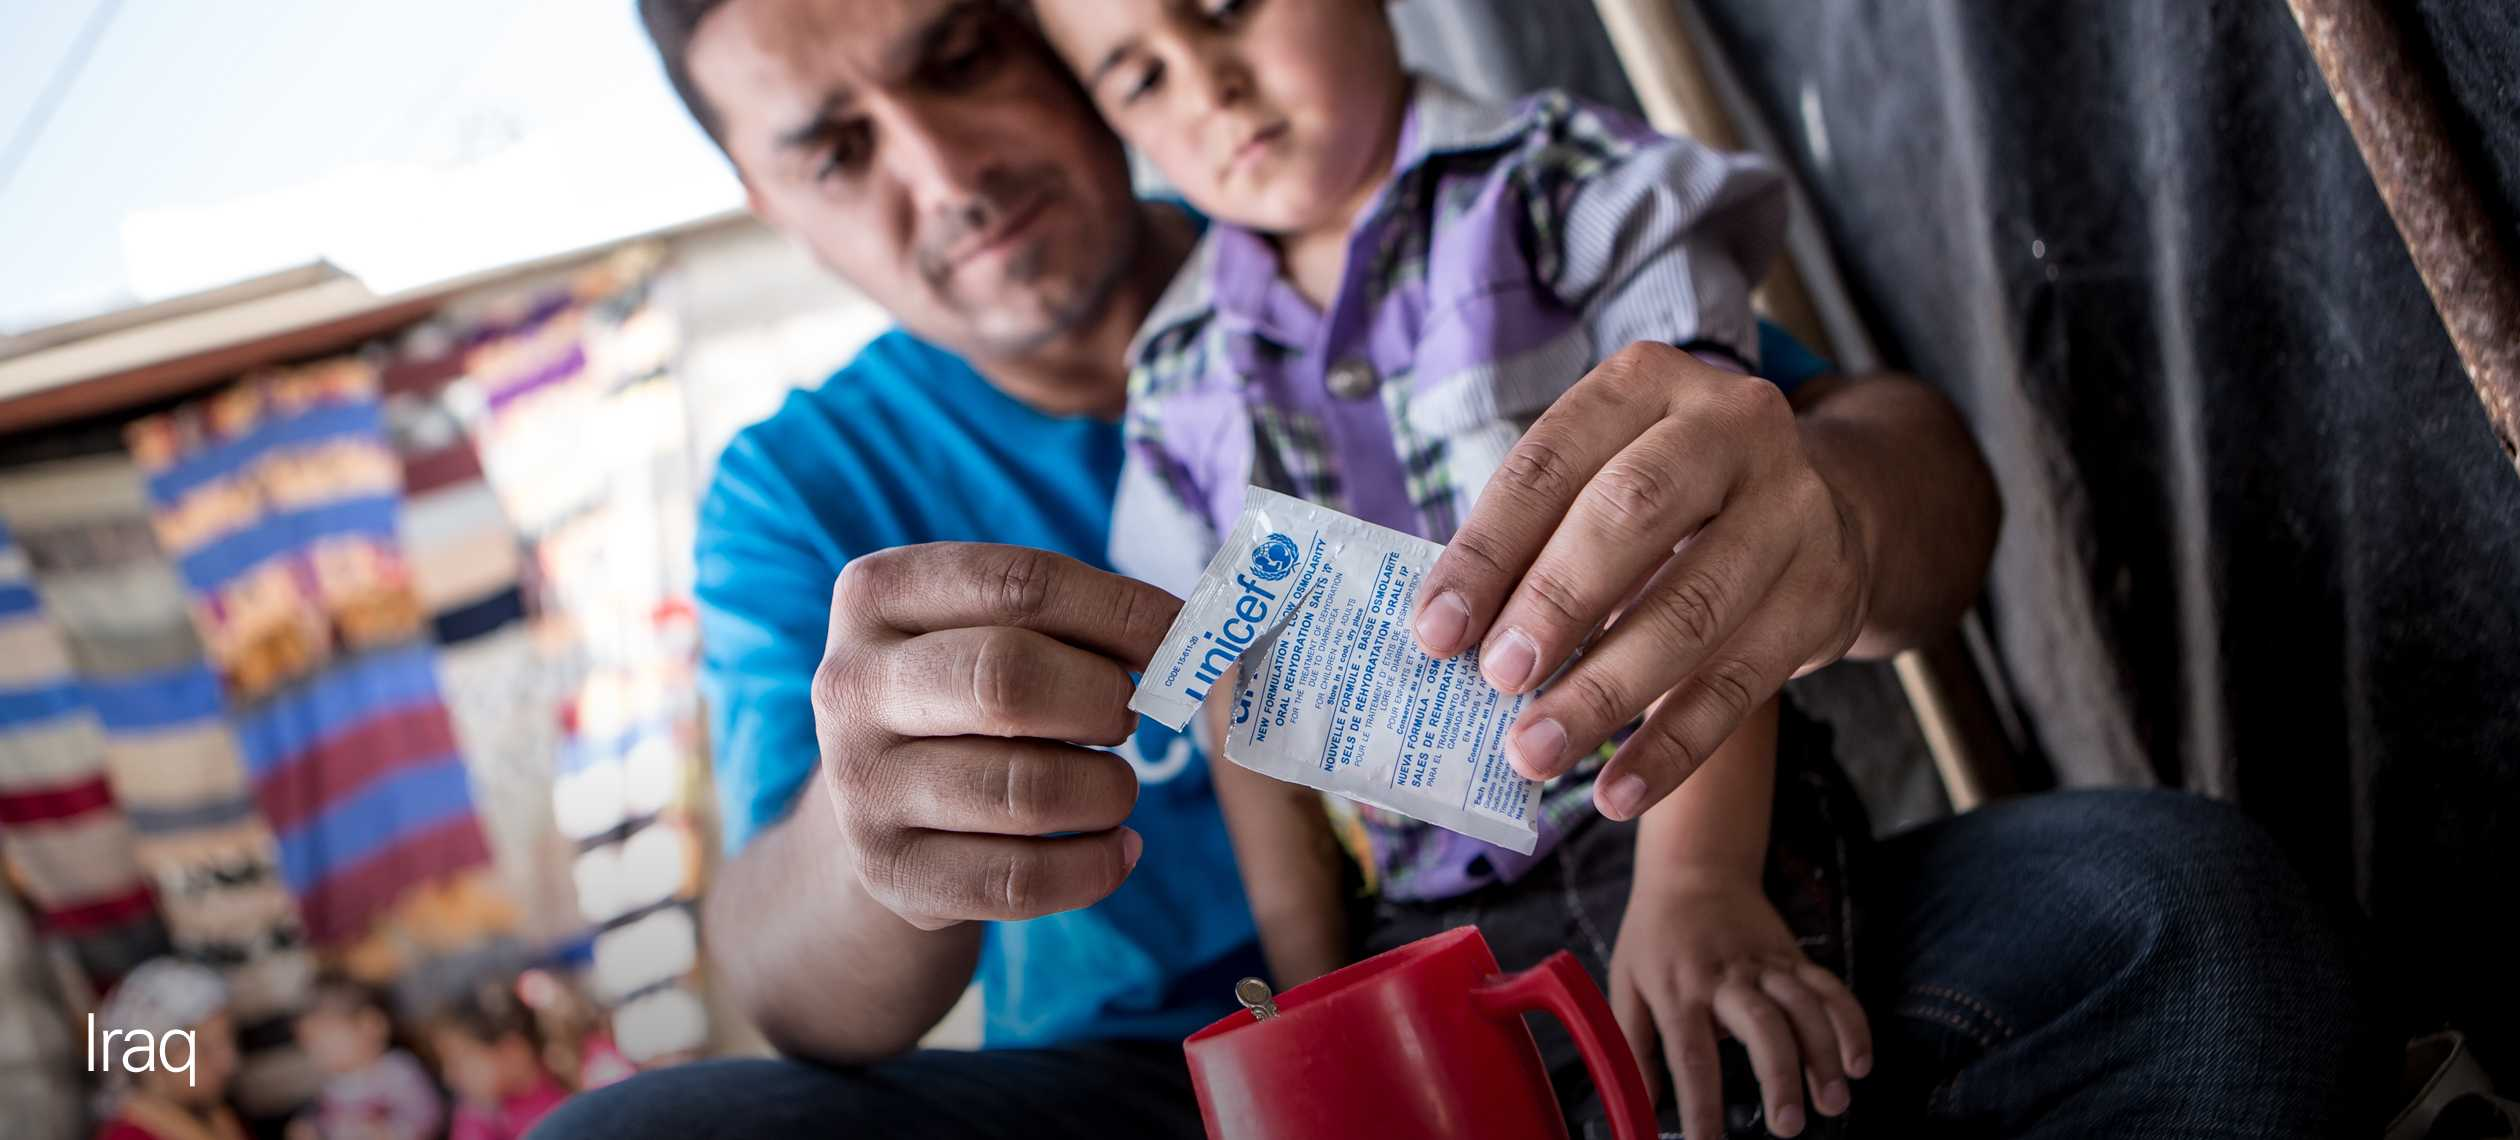 UNICEF Australia volunteer in Iraq giving a young boy oral rehydration salts